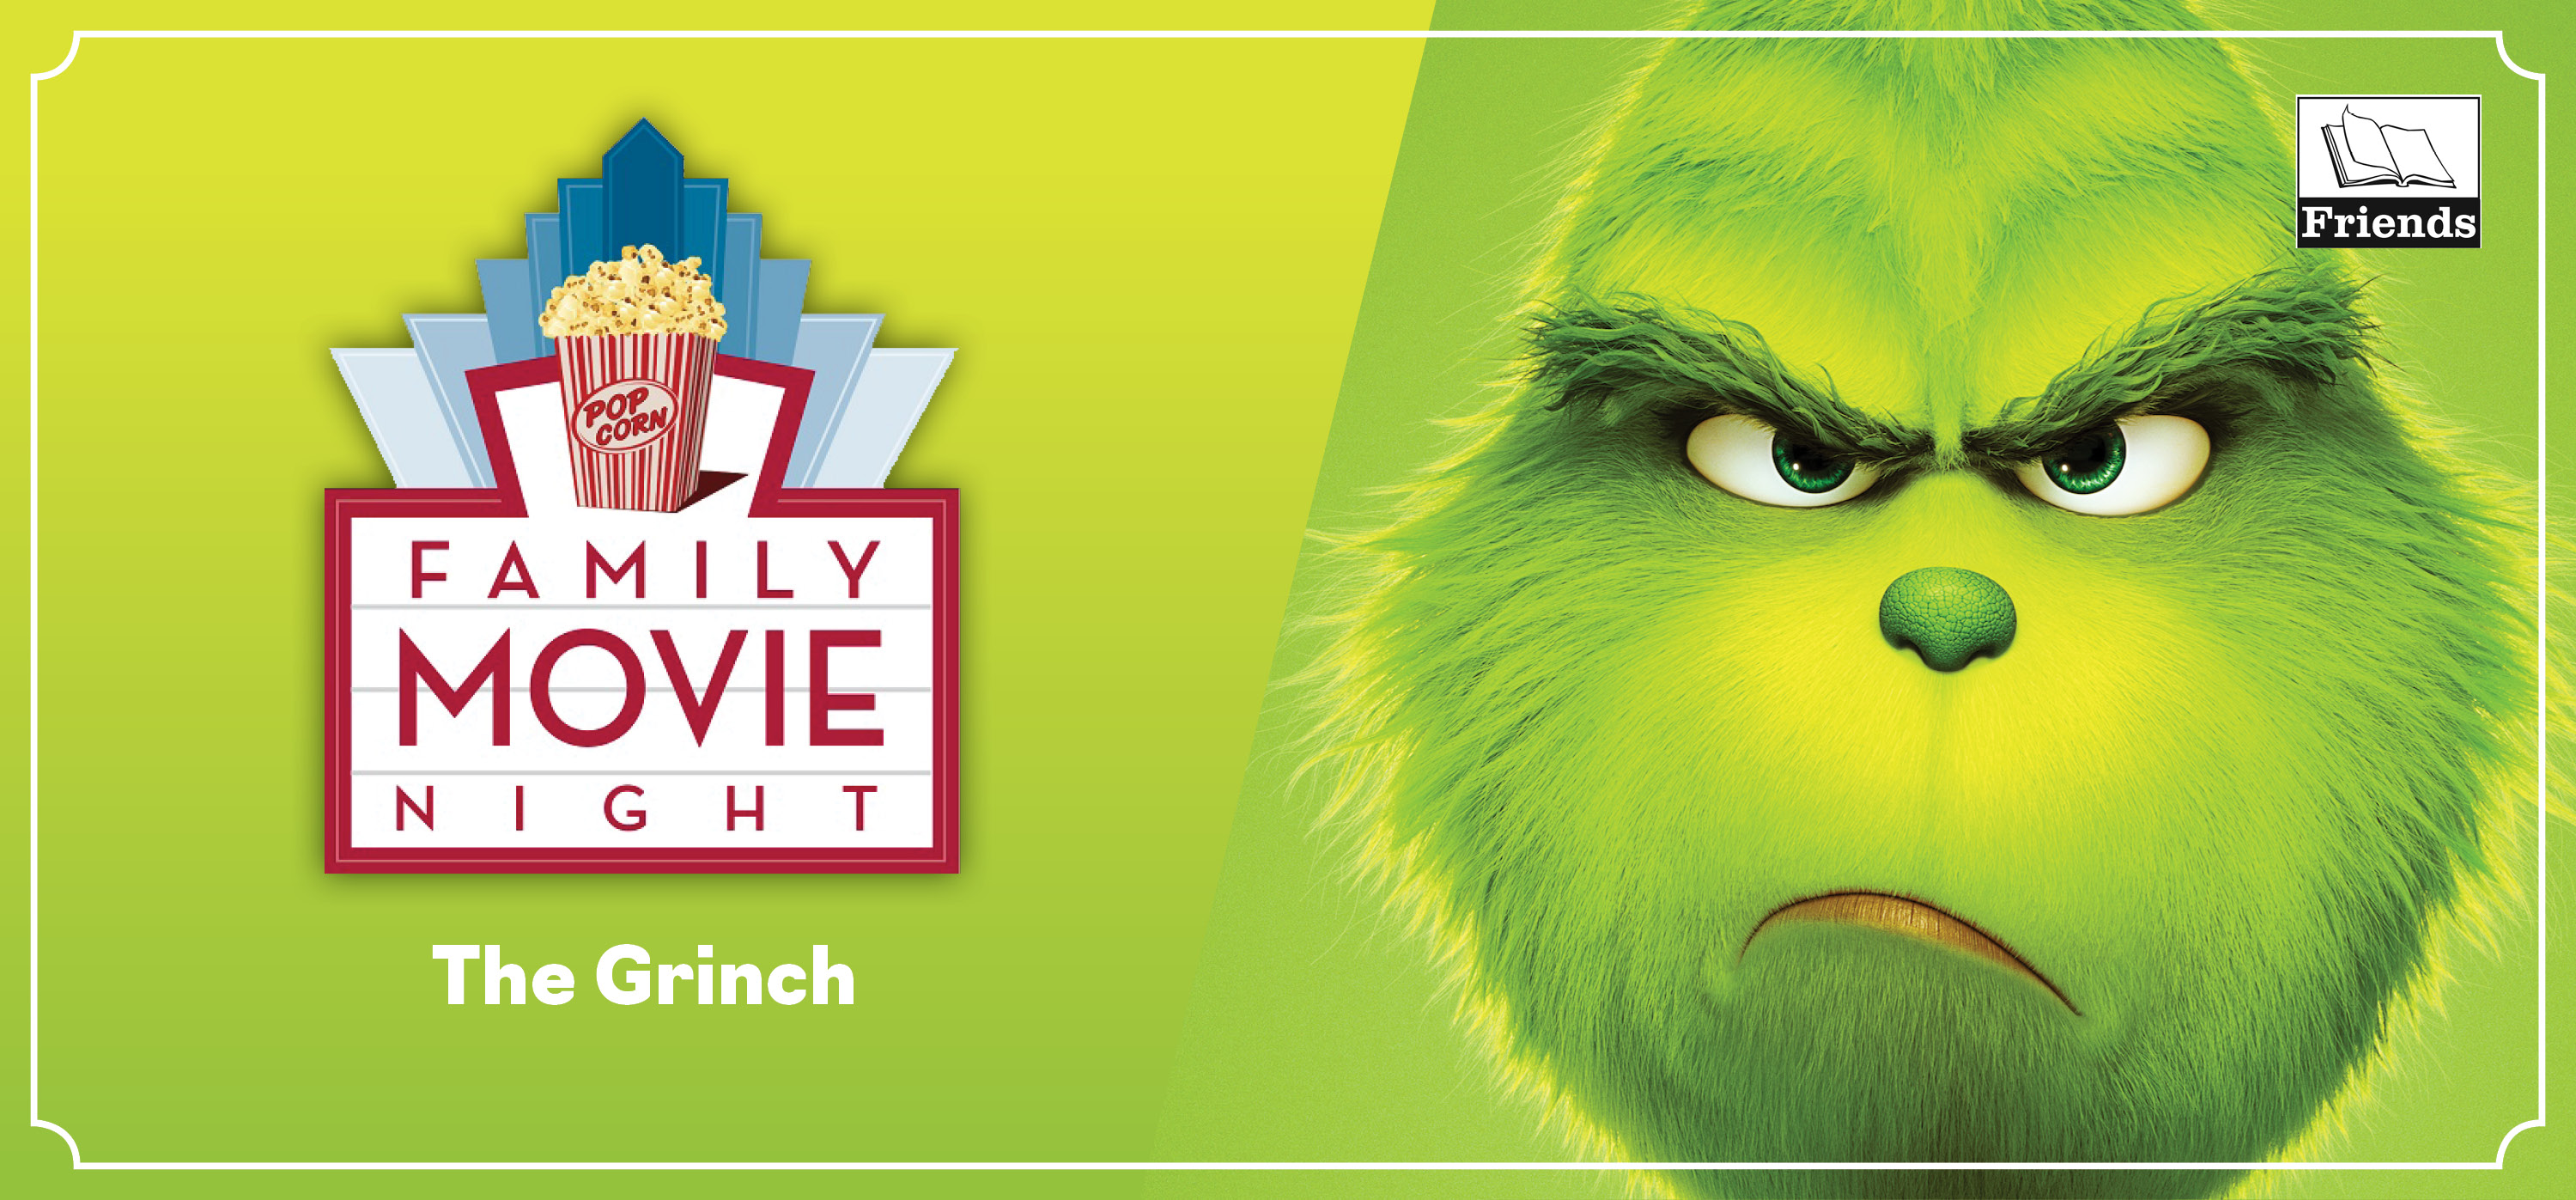 Family Picnic Movie Night - The Grinch